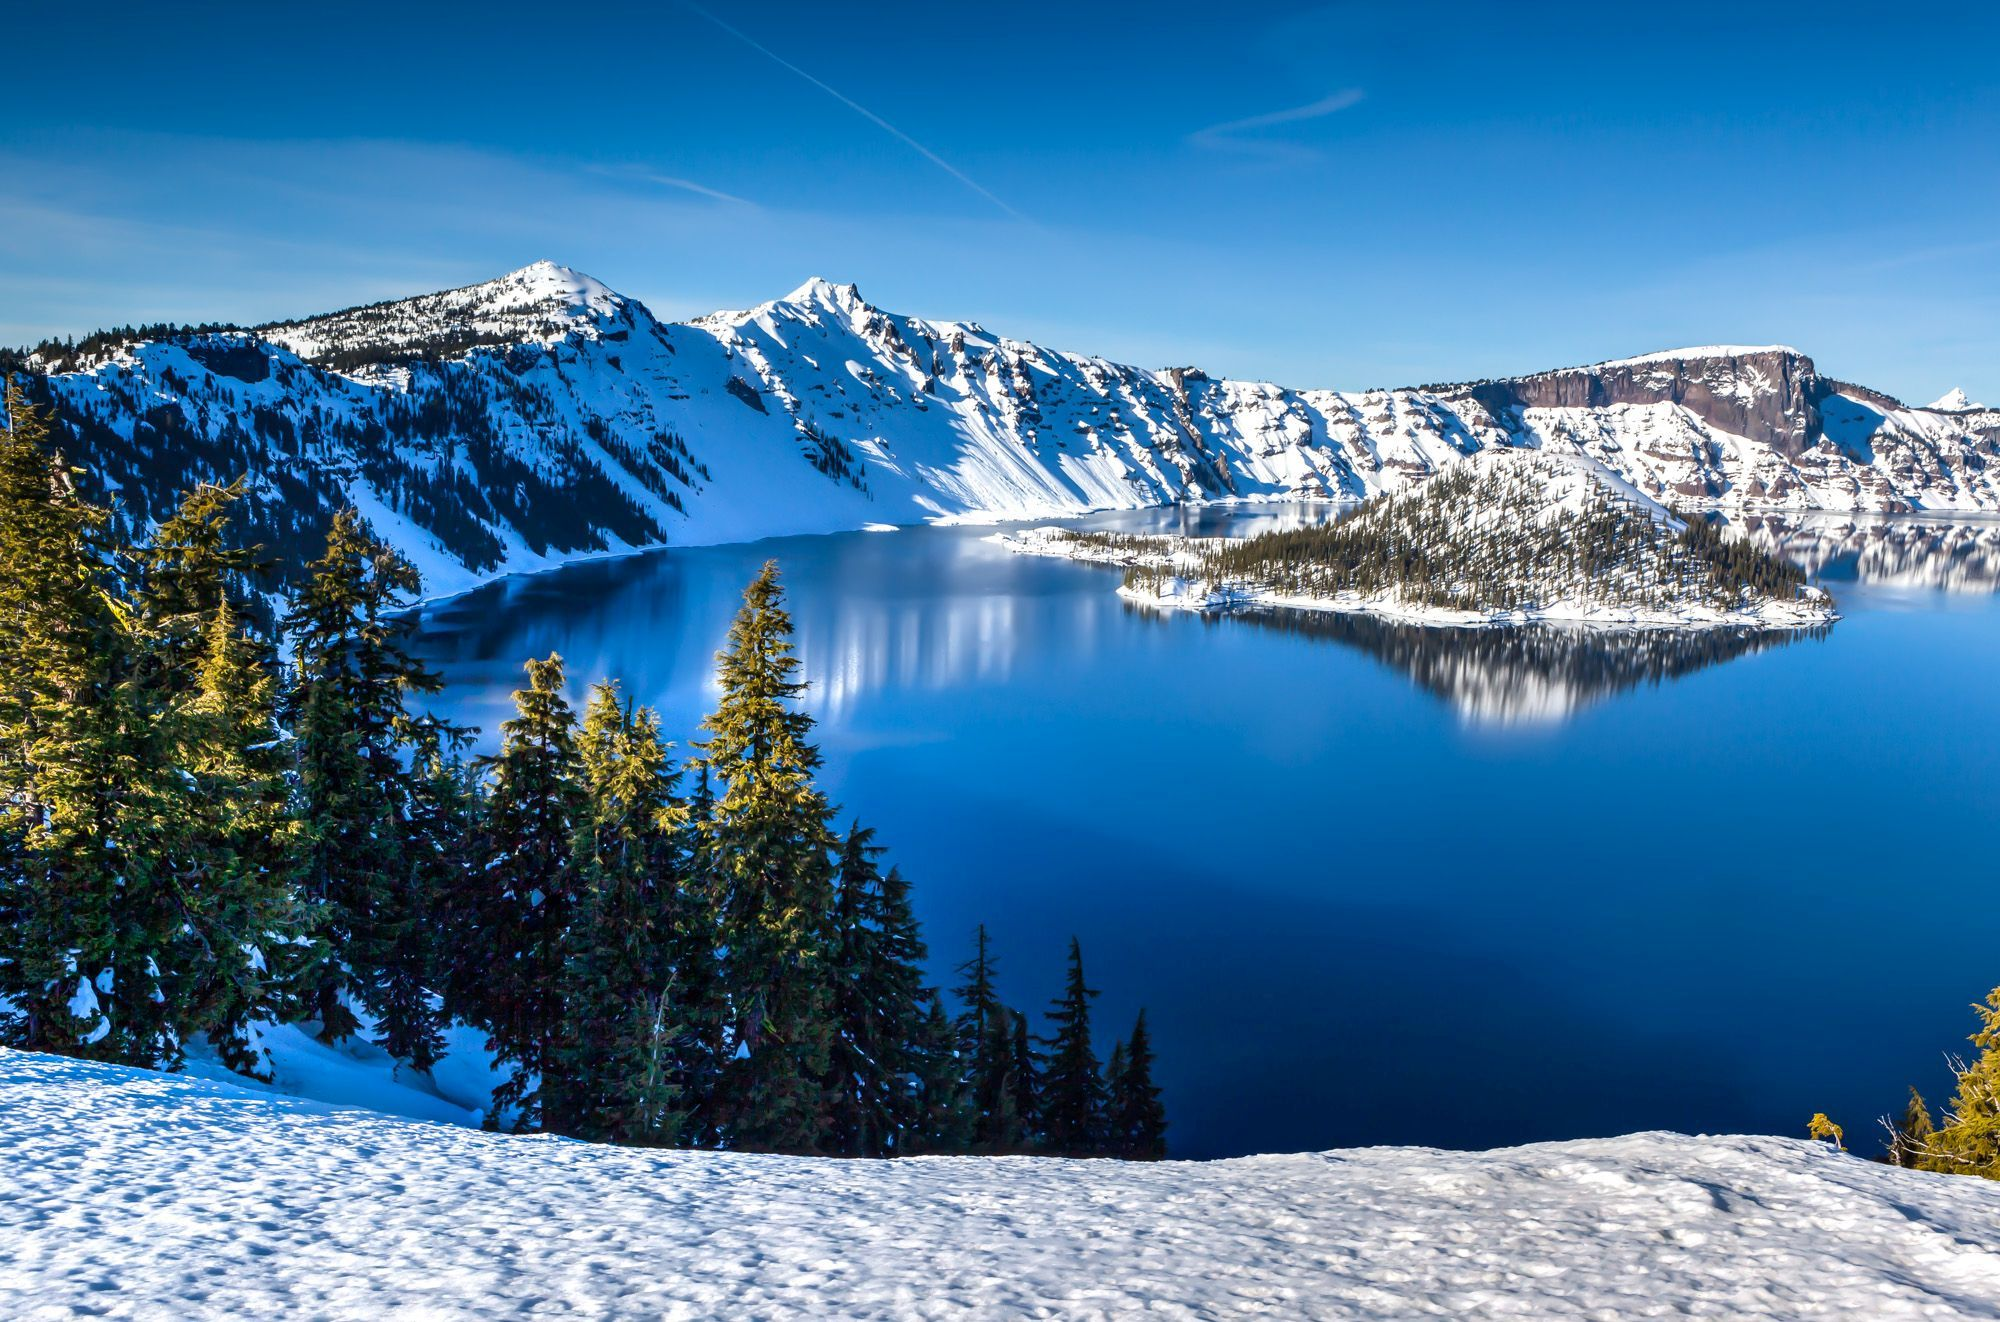 Winter Road Trip to Crater Lake